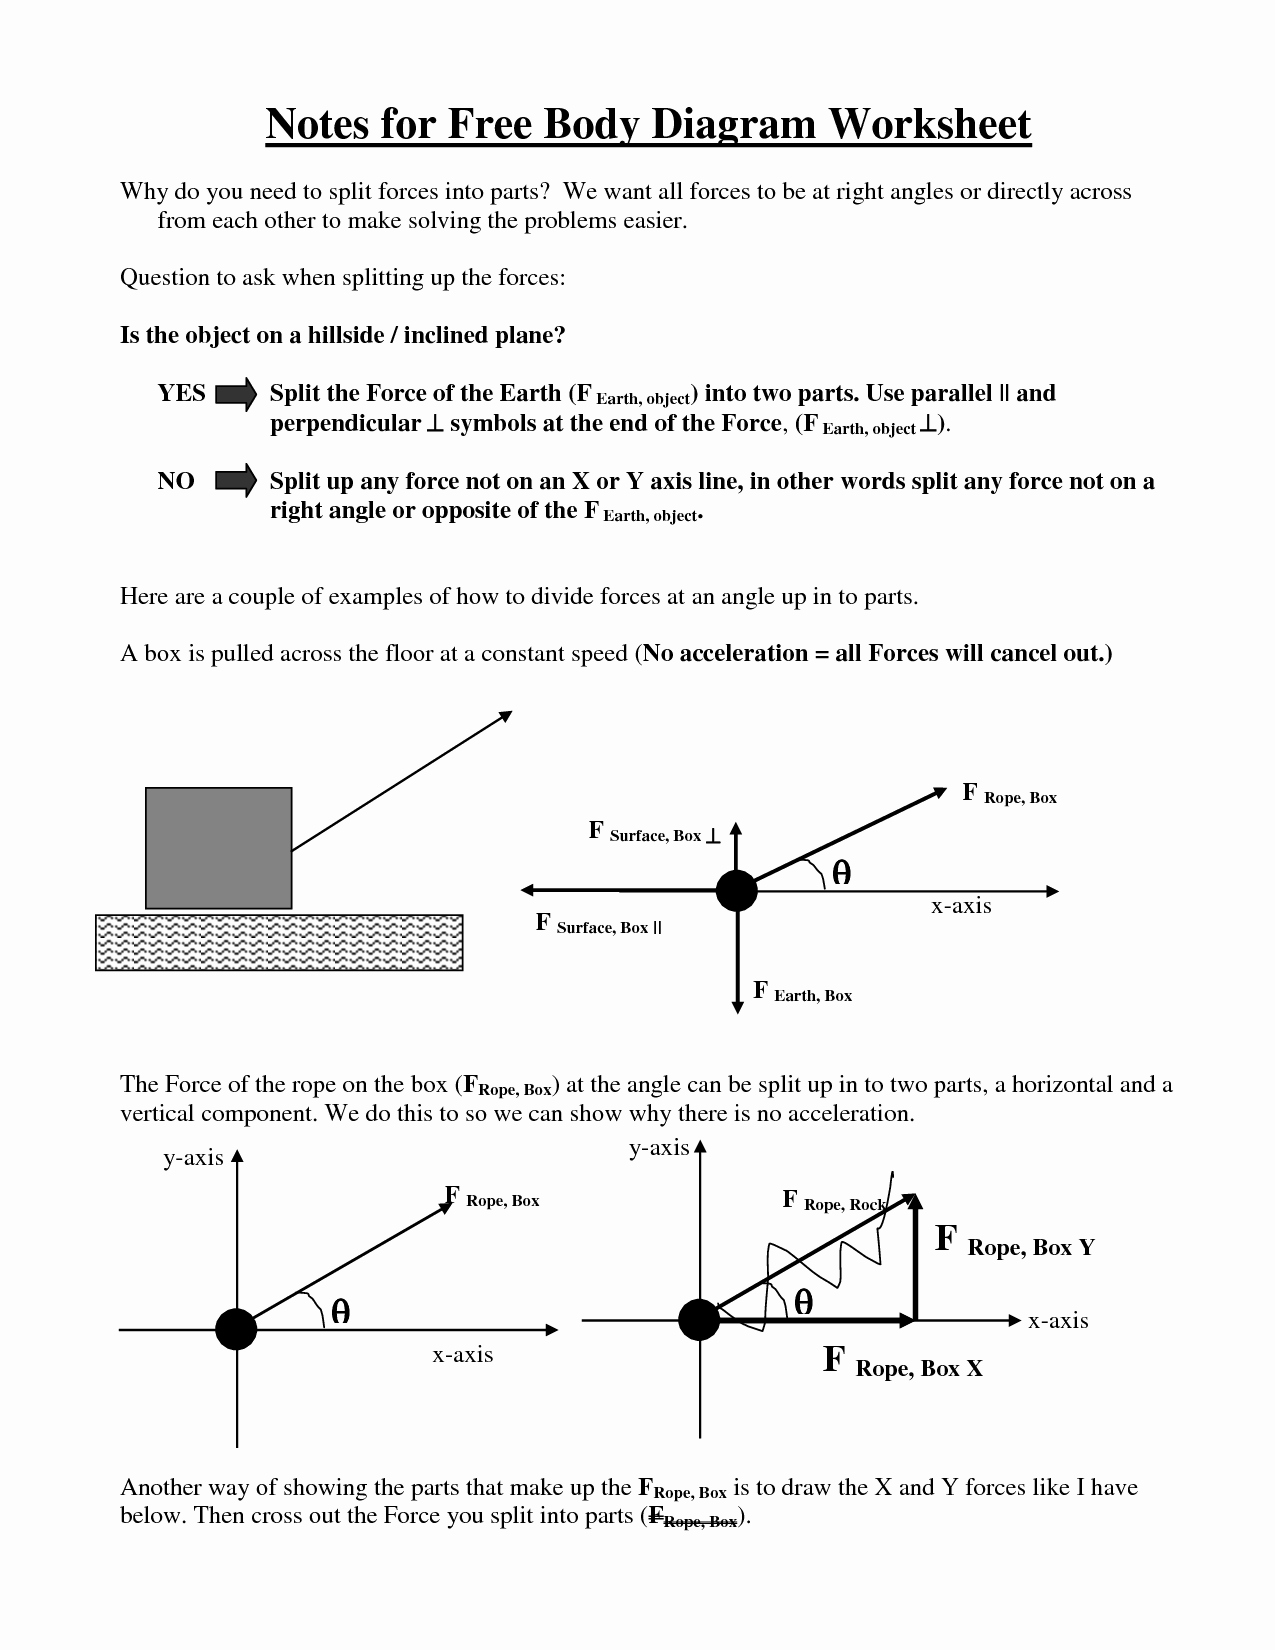 Net force Worksheet Answers Inspirational 13 Best Of force Diagrams Worksheets with Answers